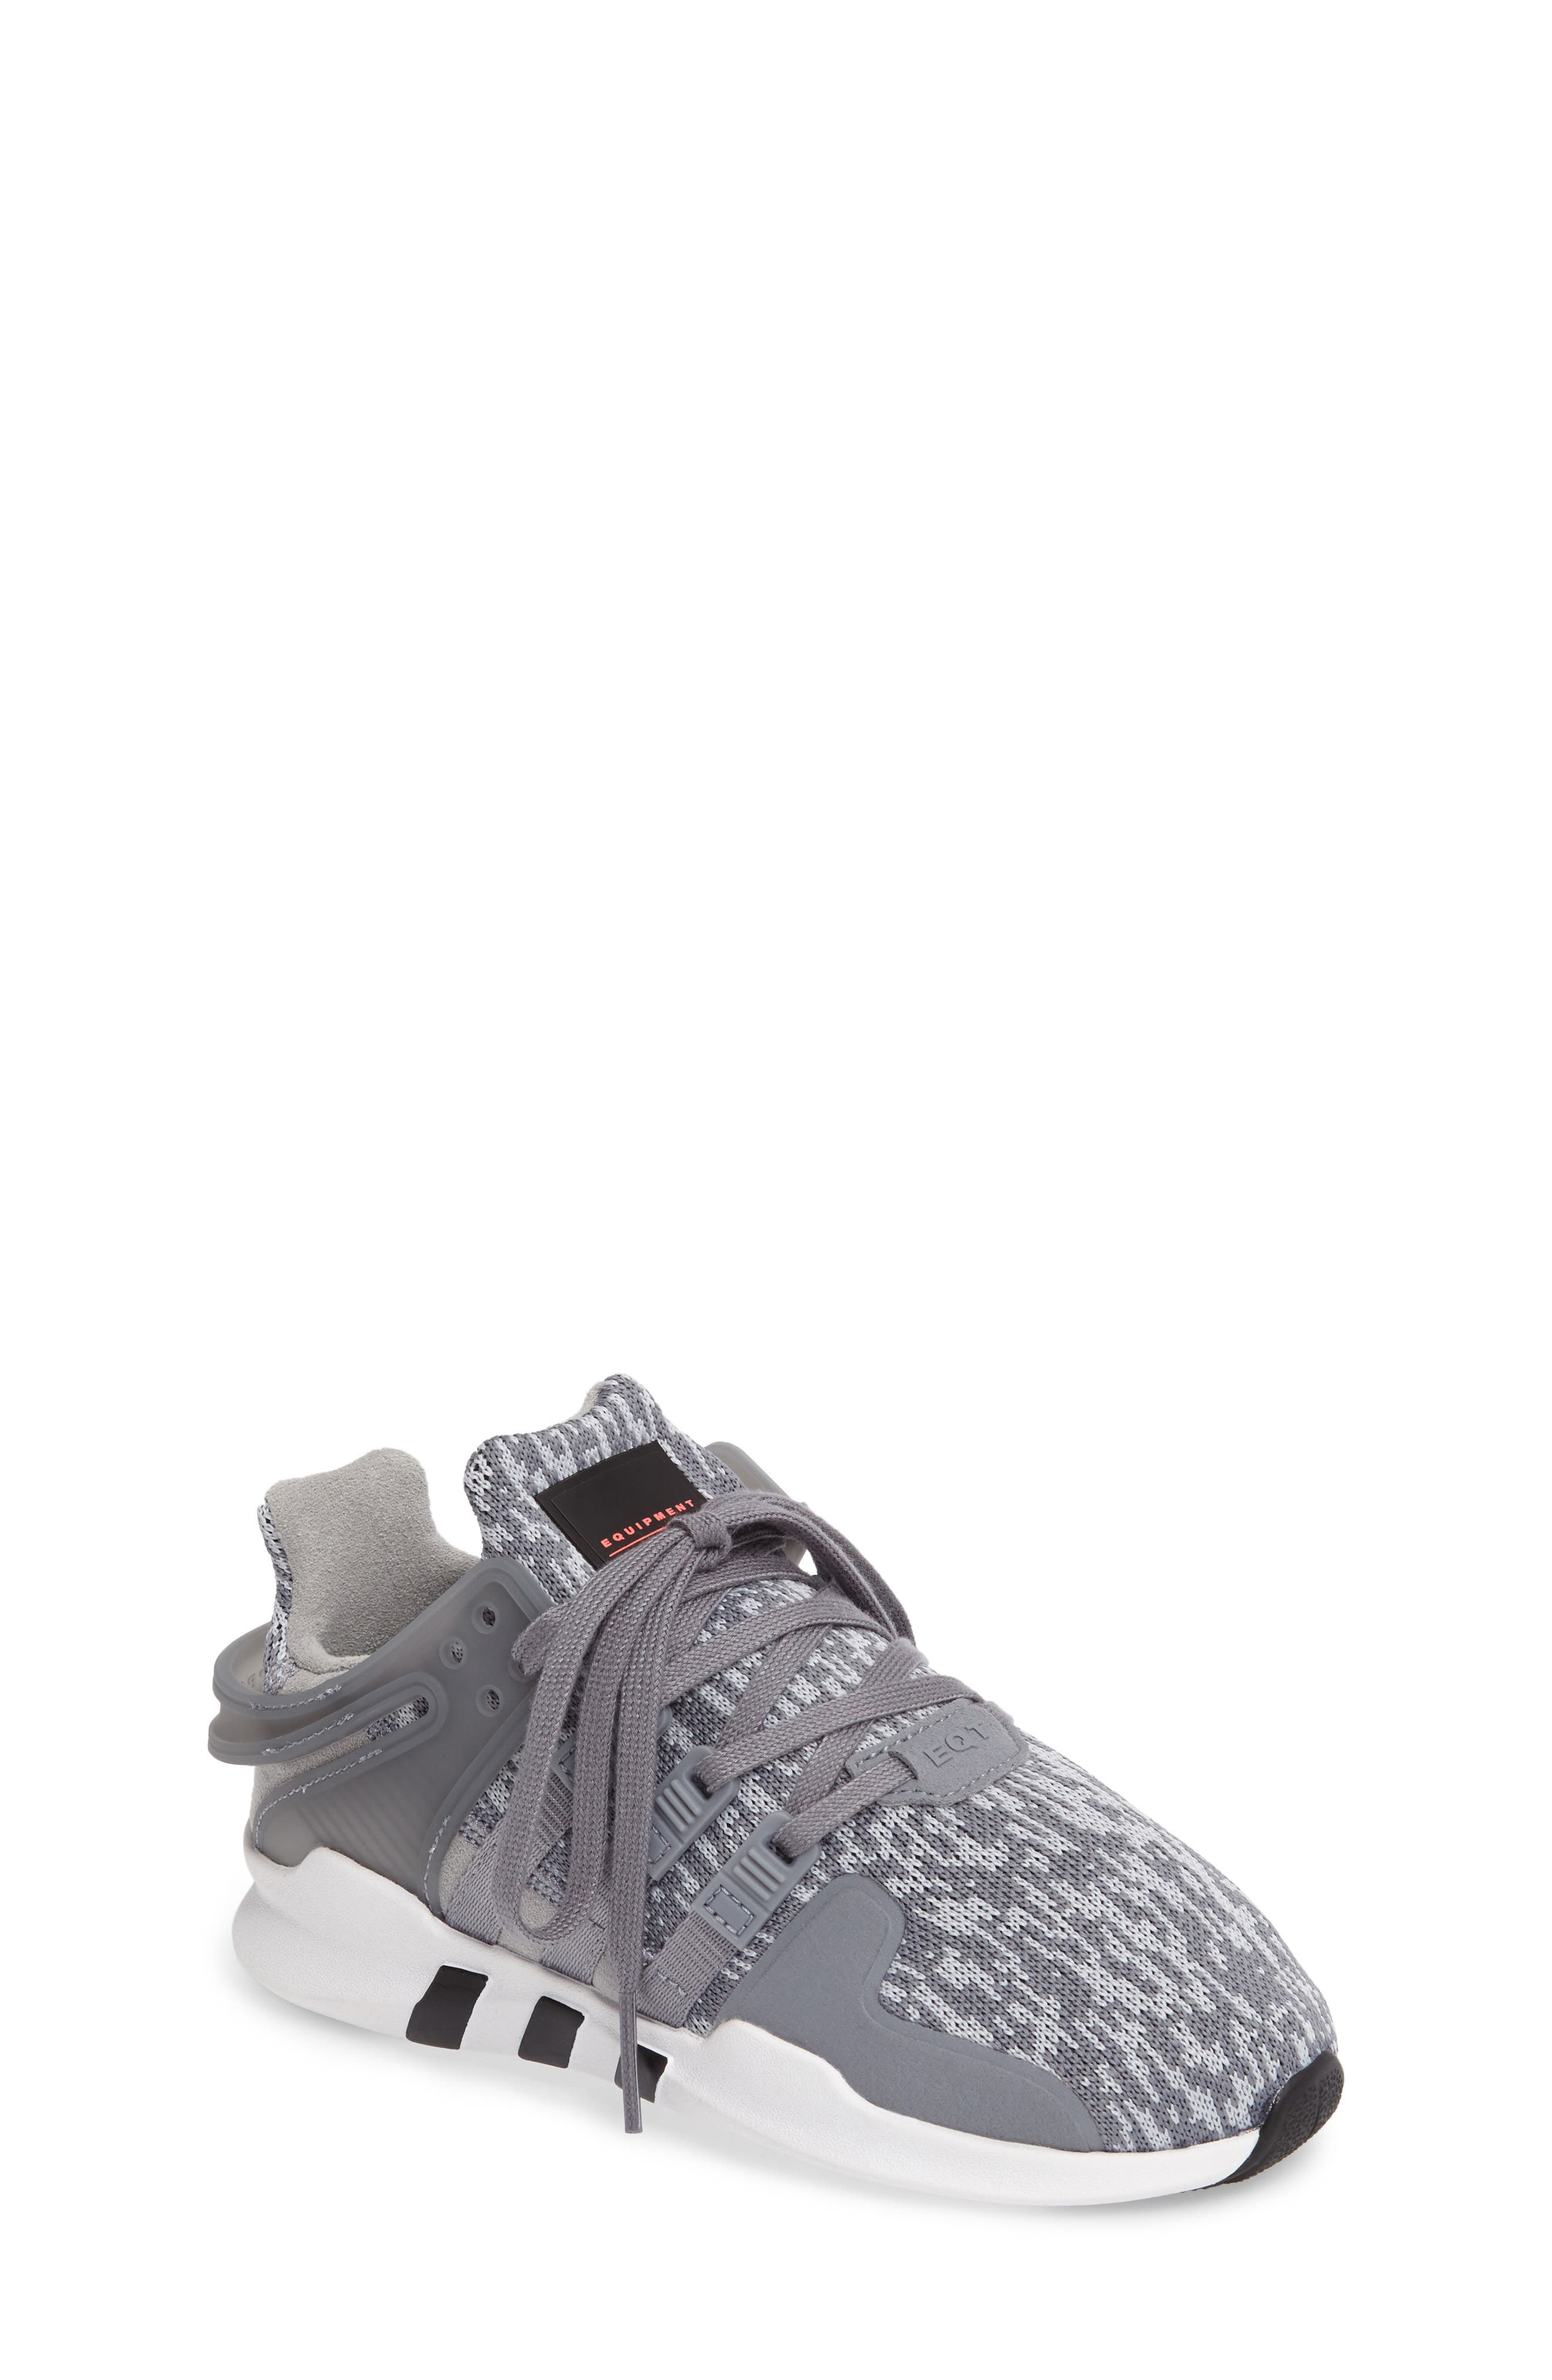 adidas Equipment Support ADV Sneaker (Toddler, Little Kid & Big Kid)